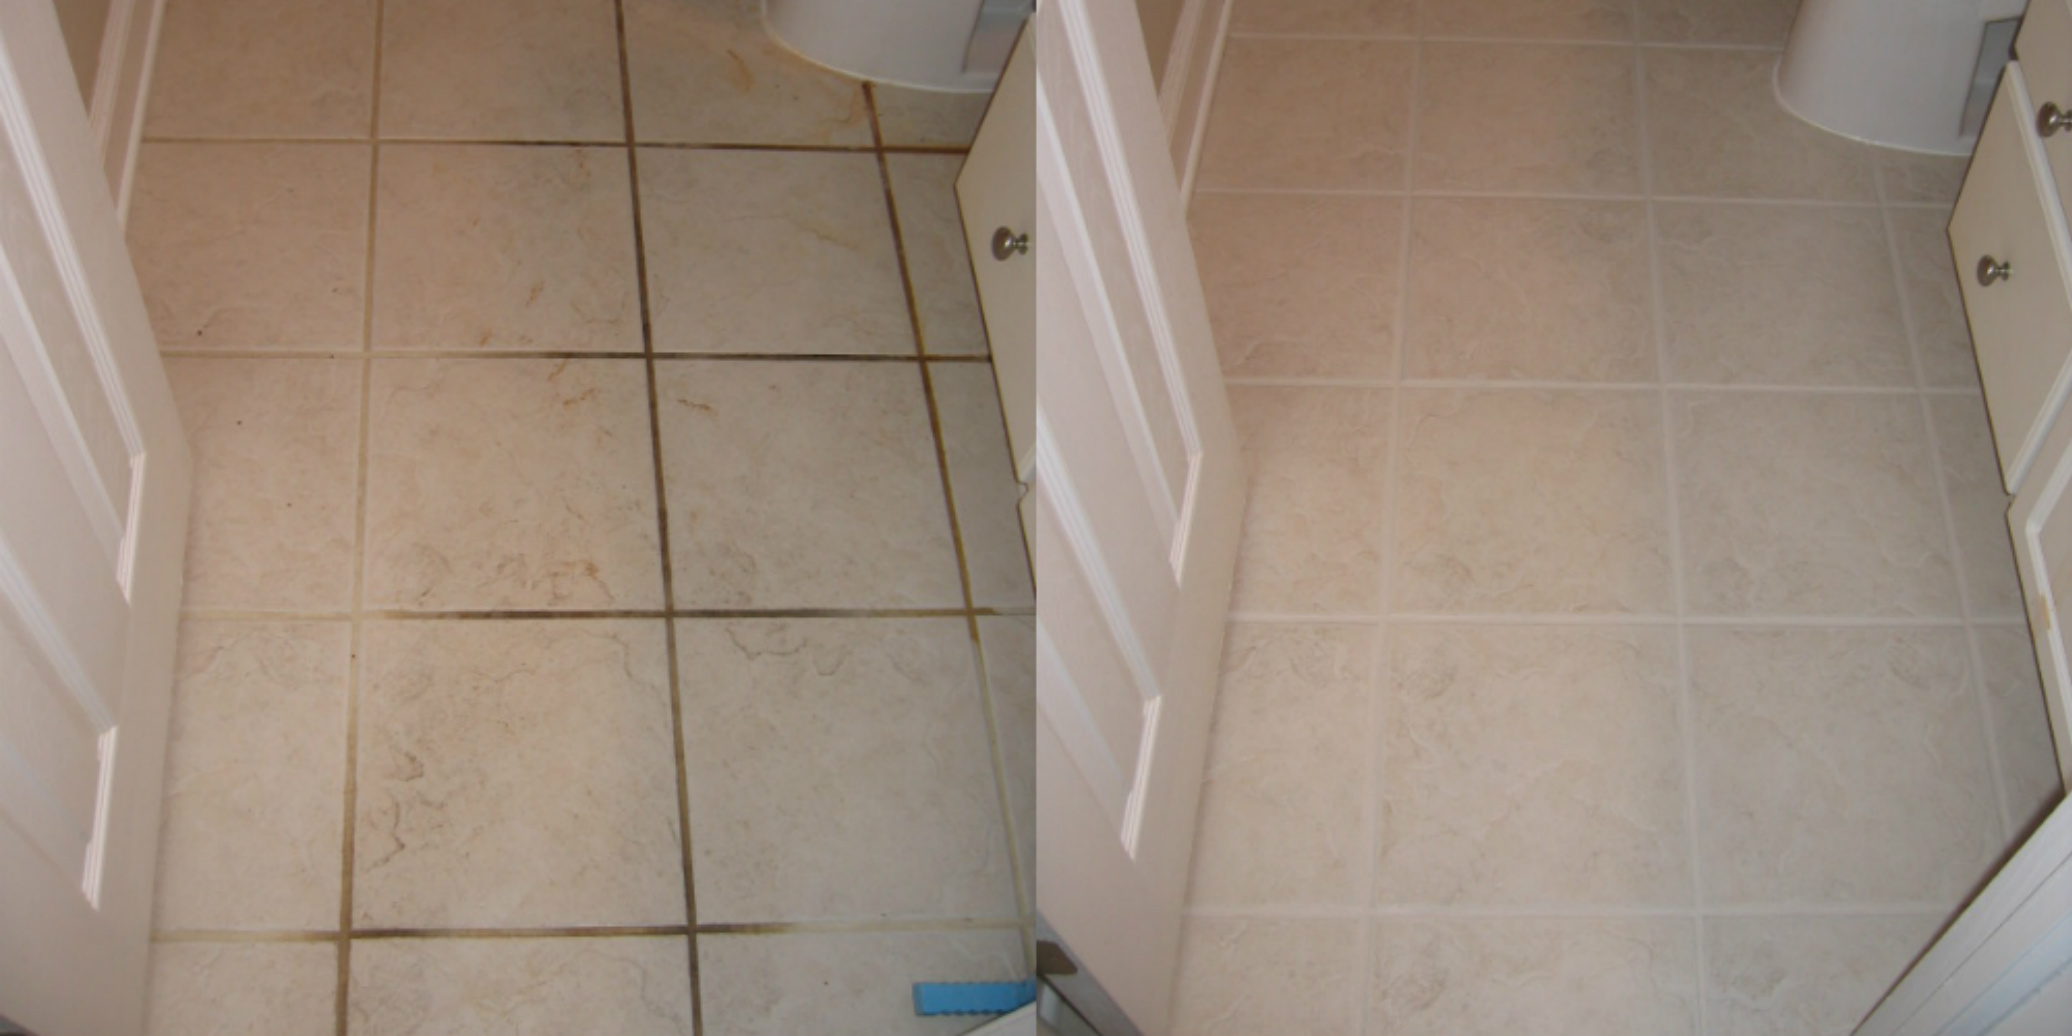 Tile Re-grouting Almurta